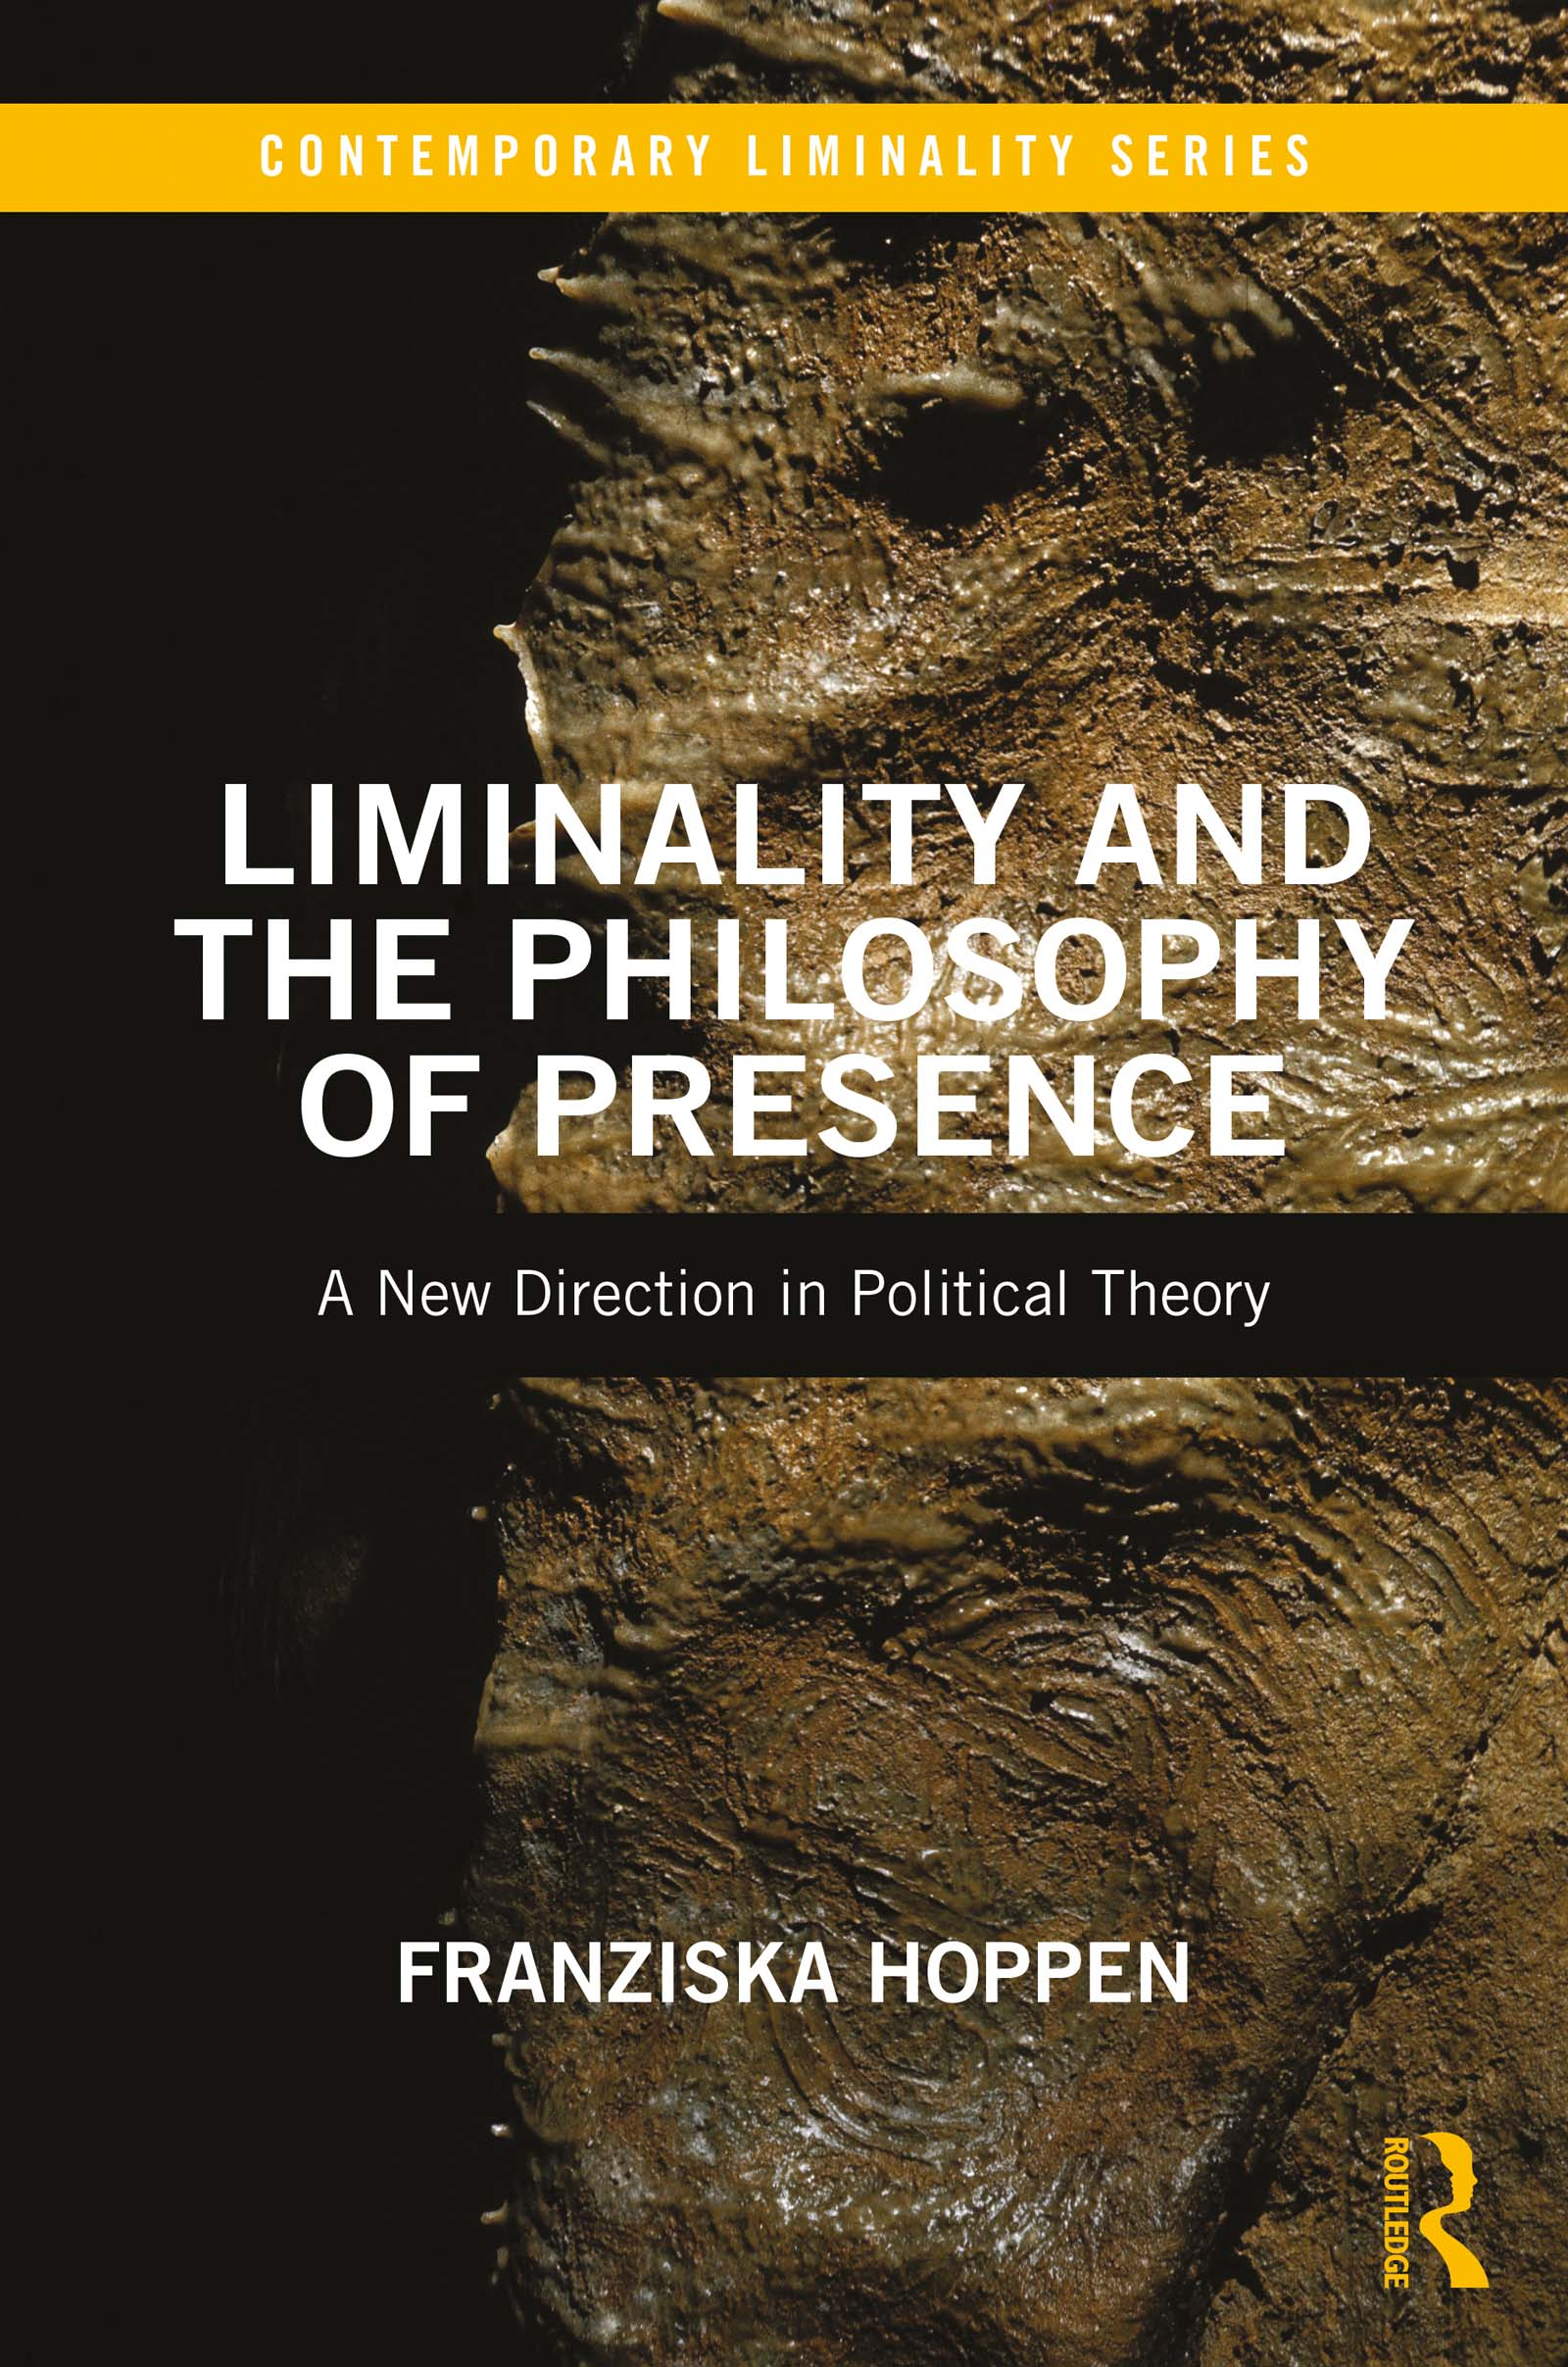 Liminality and the Philosophy of Presence